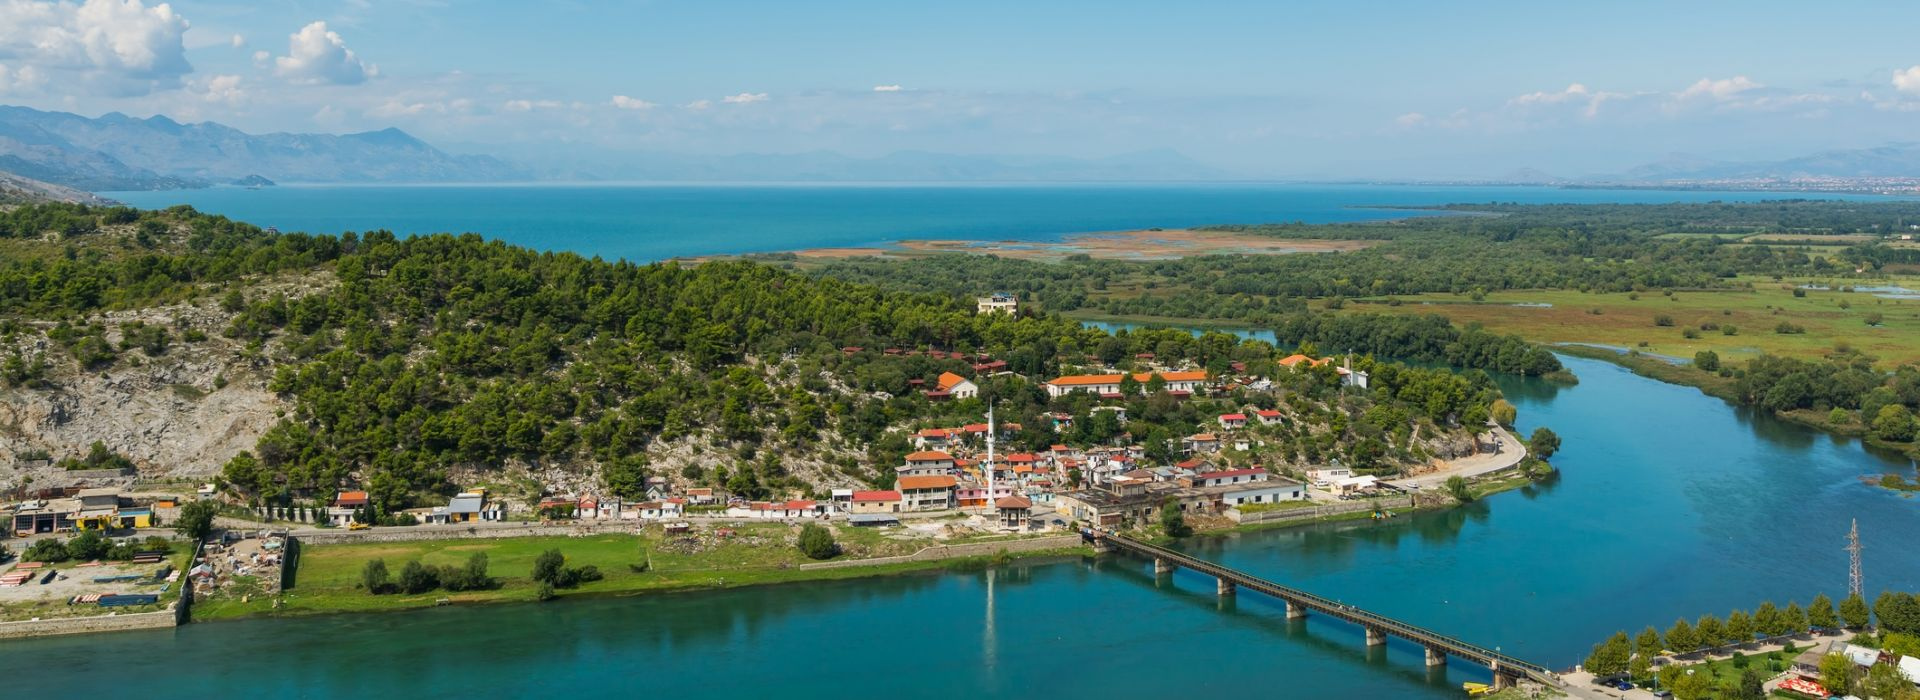 Travelling Albania – Tours and Trips in Albania